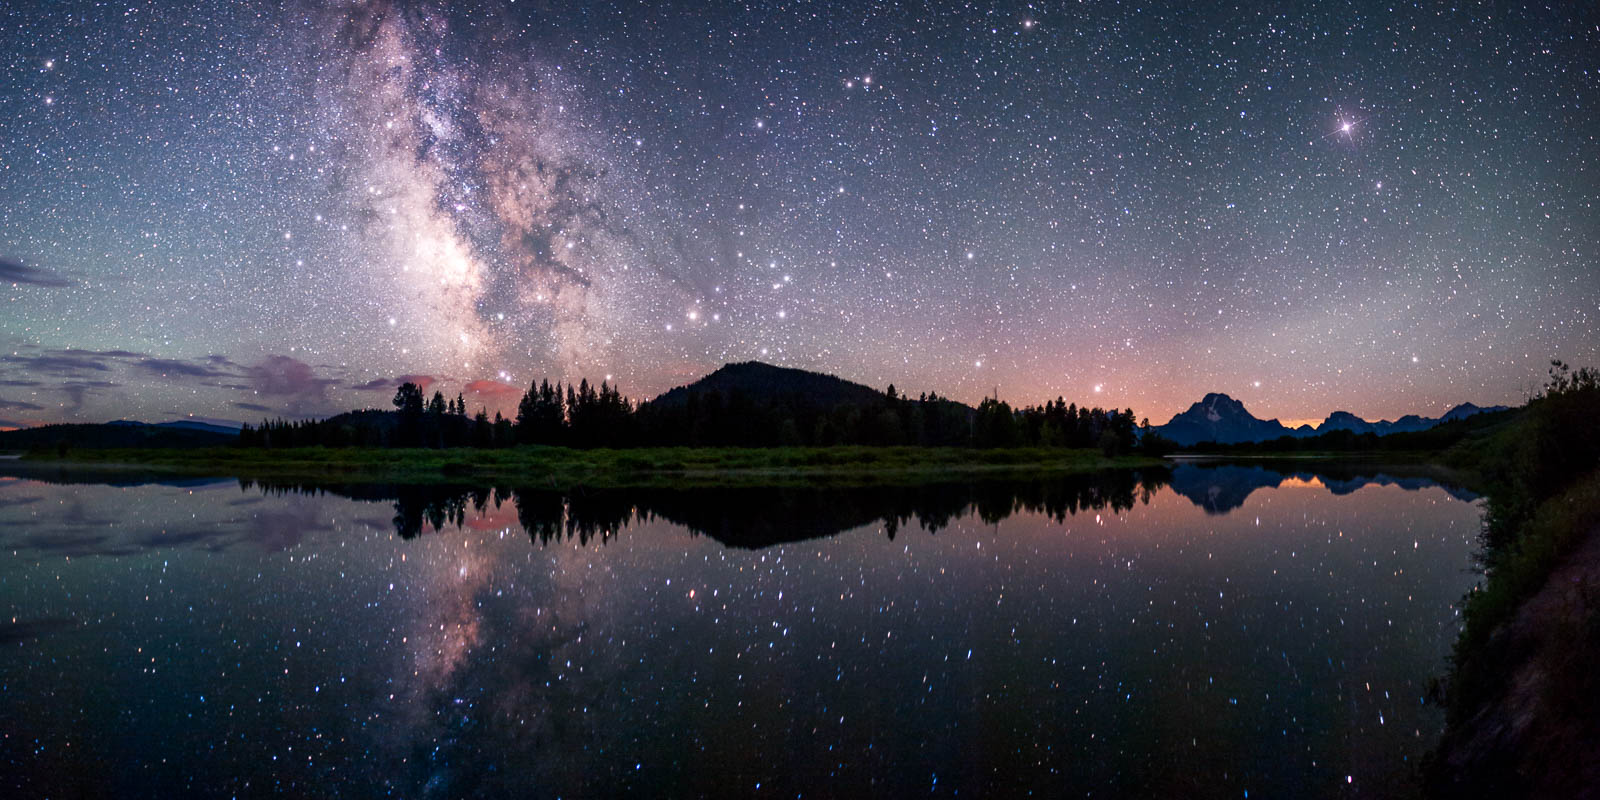 The milky way reflects in the Snake River at the famous Oxbow Bend in Grand Teton National Park